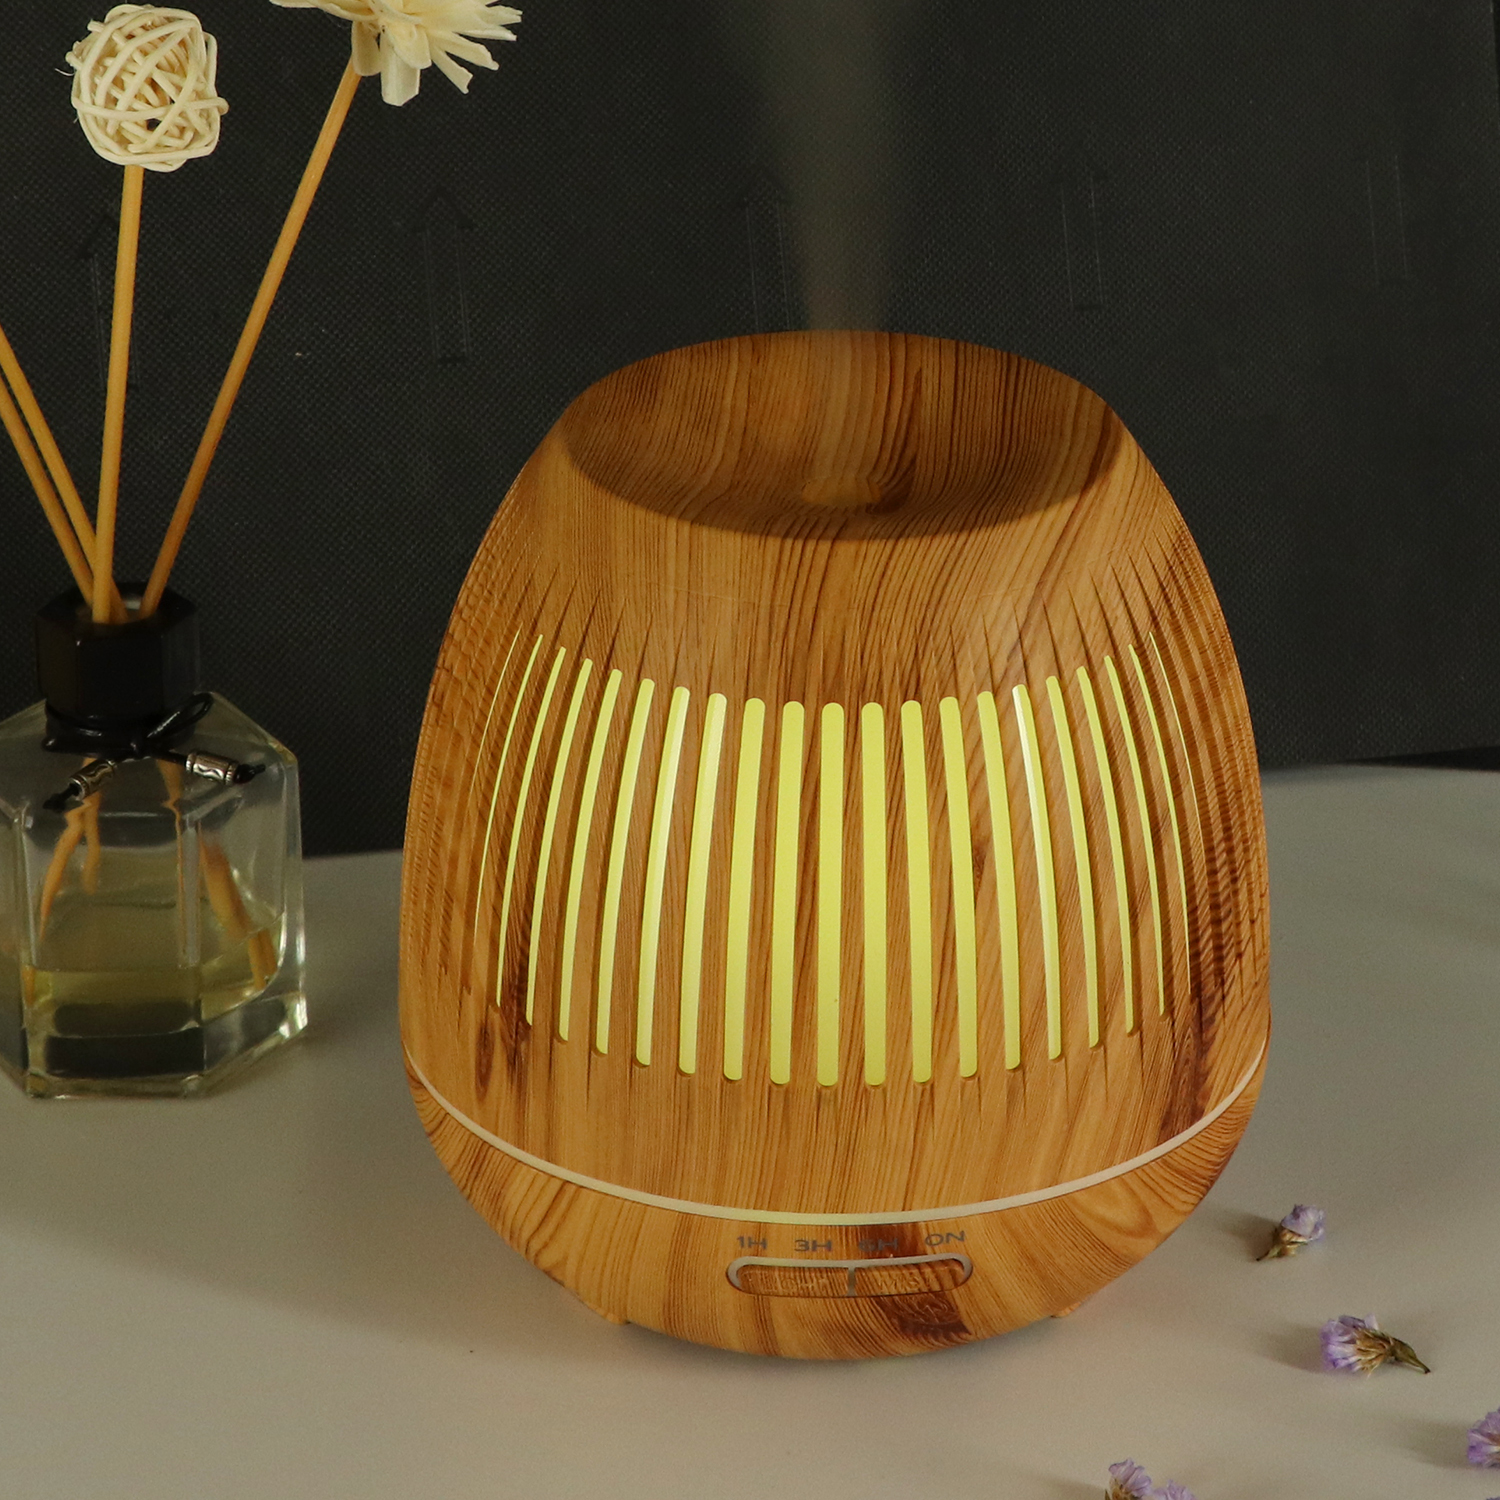 Hollow Aromatherapy Diffuser #130